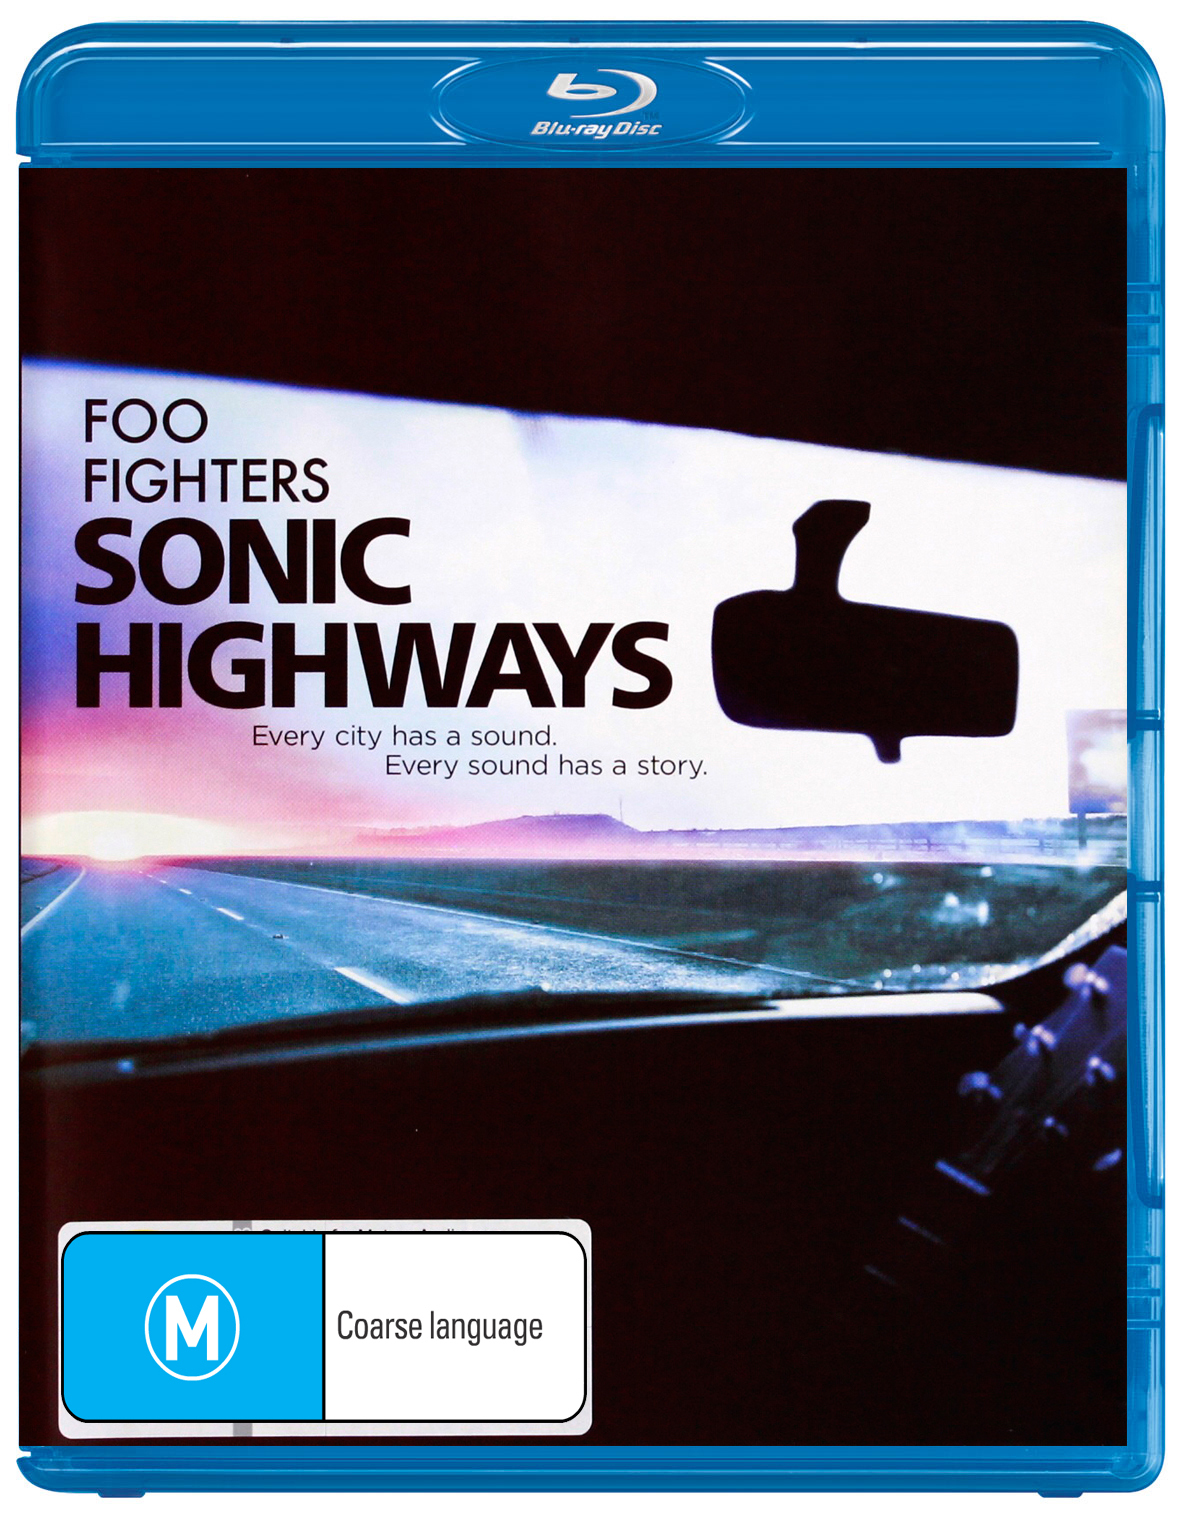 Foo Fighters - Sonic Highways on Blu-ray image